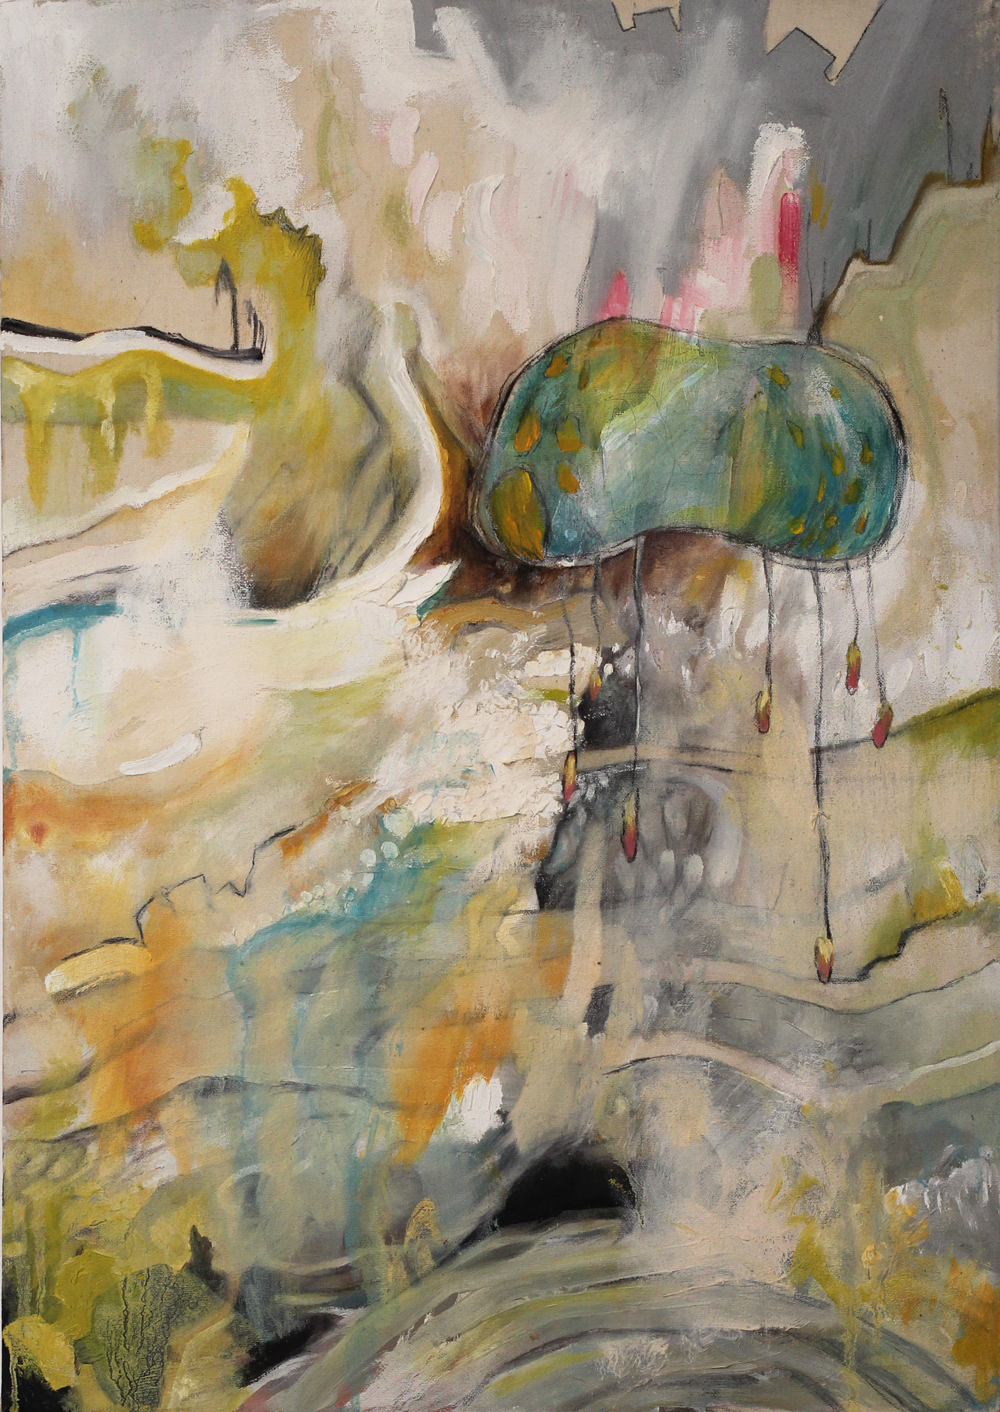 """float, 24x17"""", oil and graphite on canvas, 2012-2013, private collection"""